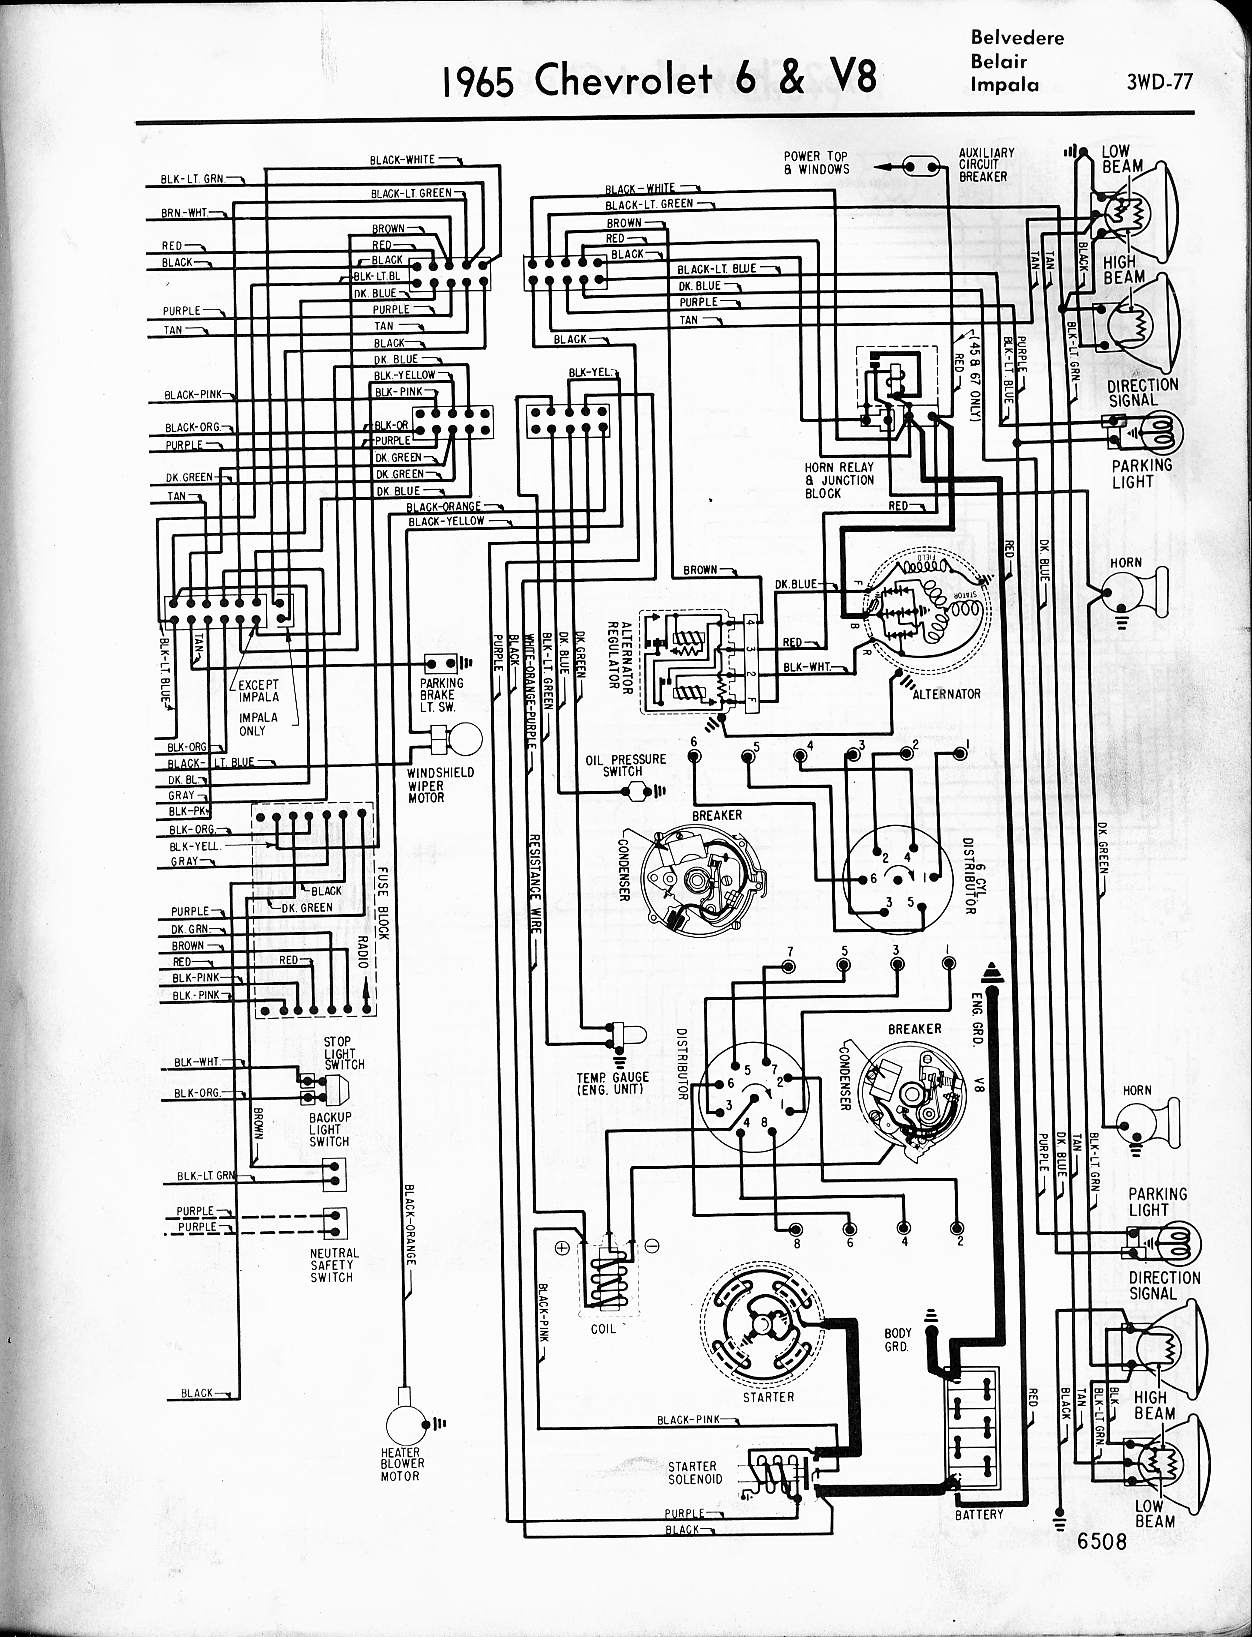 1963 impala wiper motor wiring diagram 1996 ford explorer stereo corvair chevy truck